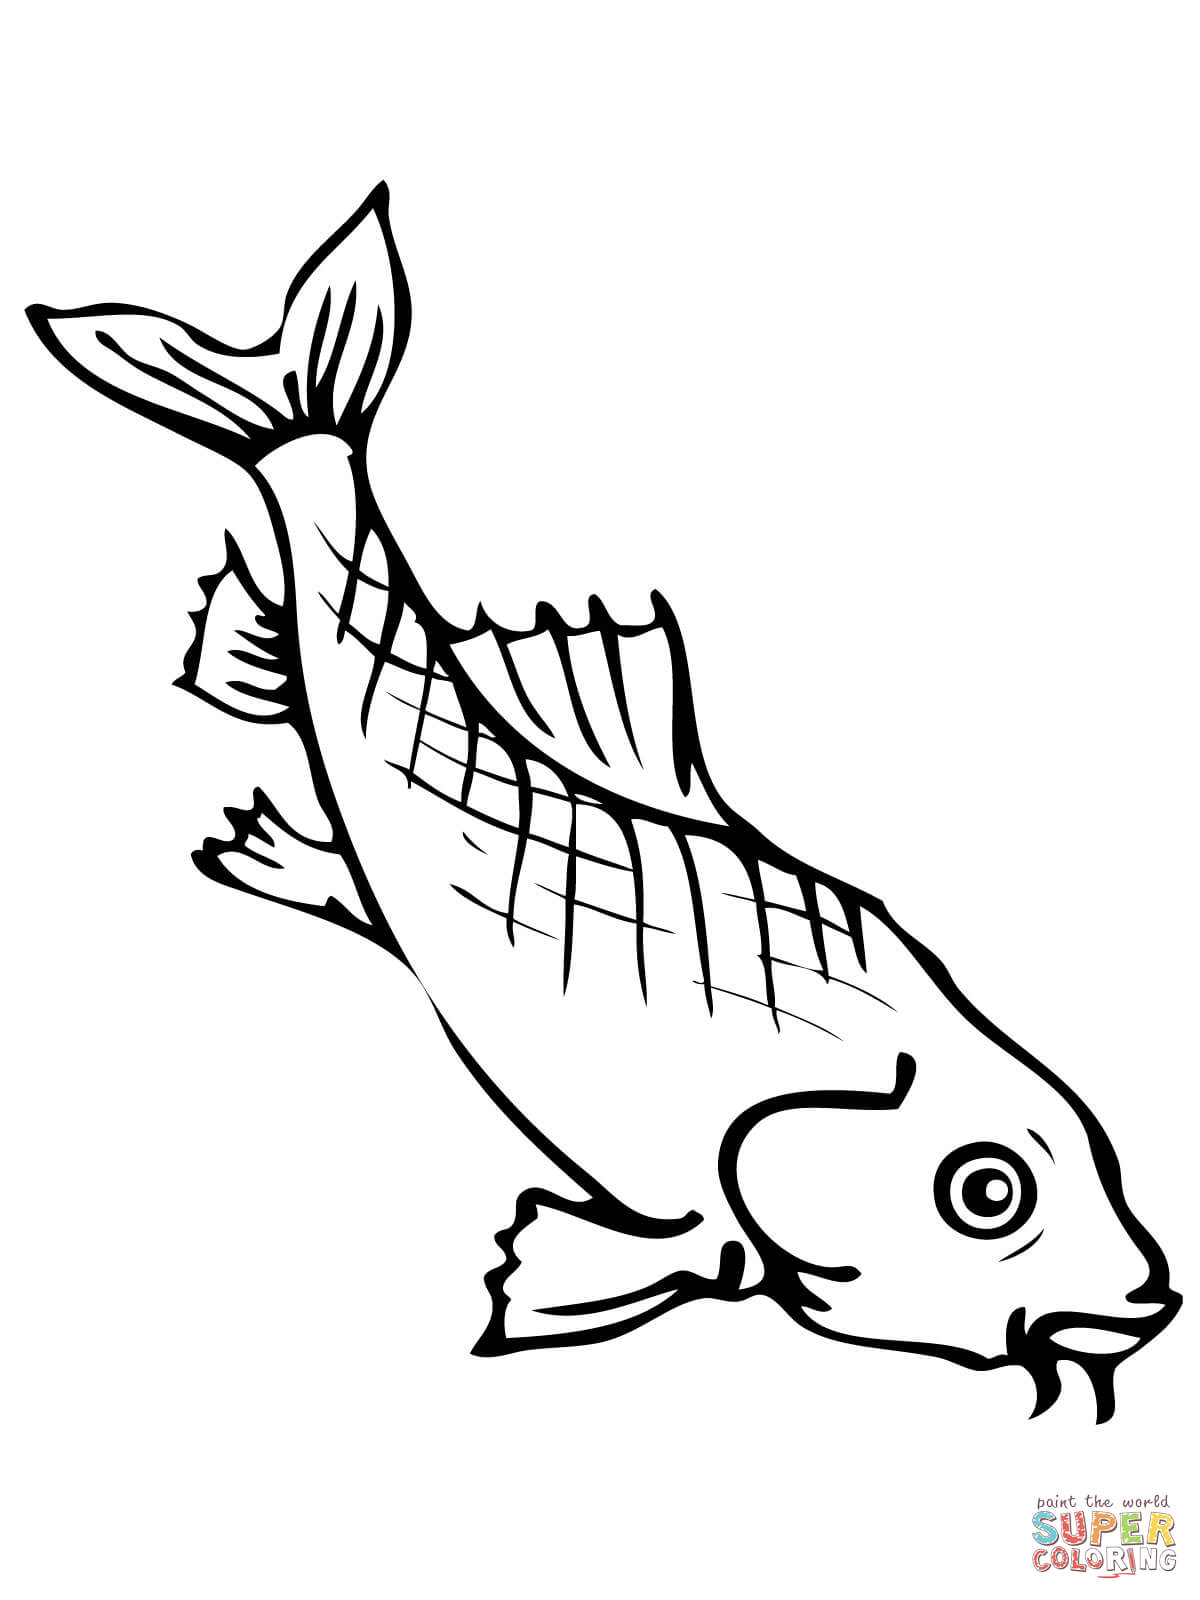 Freshwater Carp Coloring Page Free Printable Coloring Pages